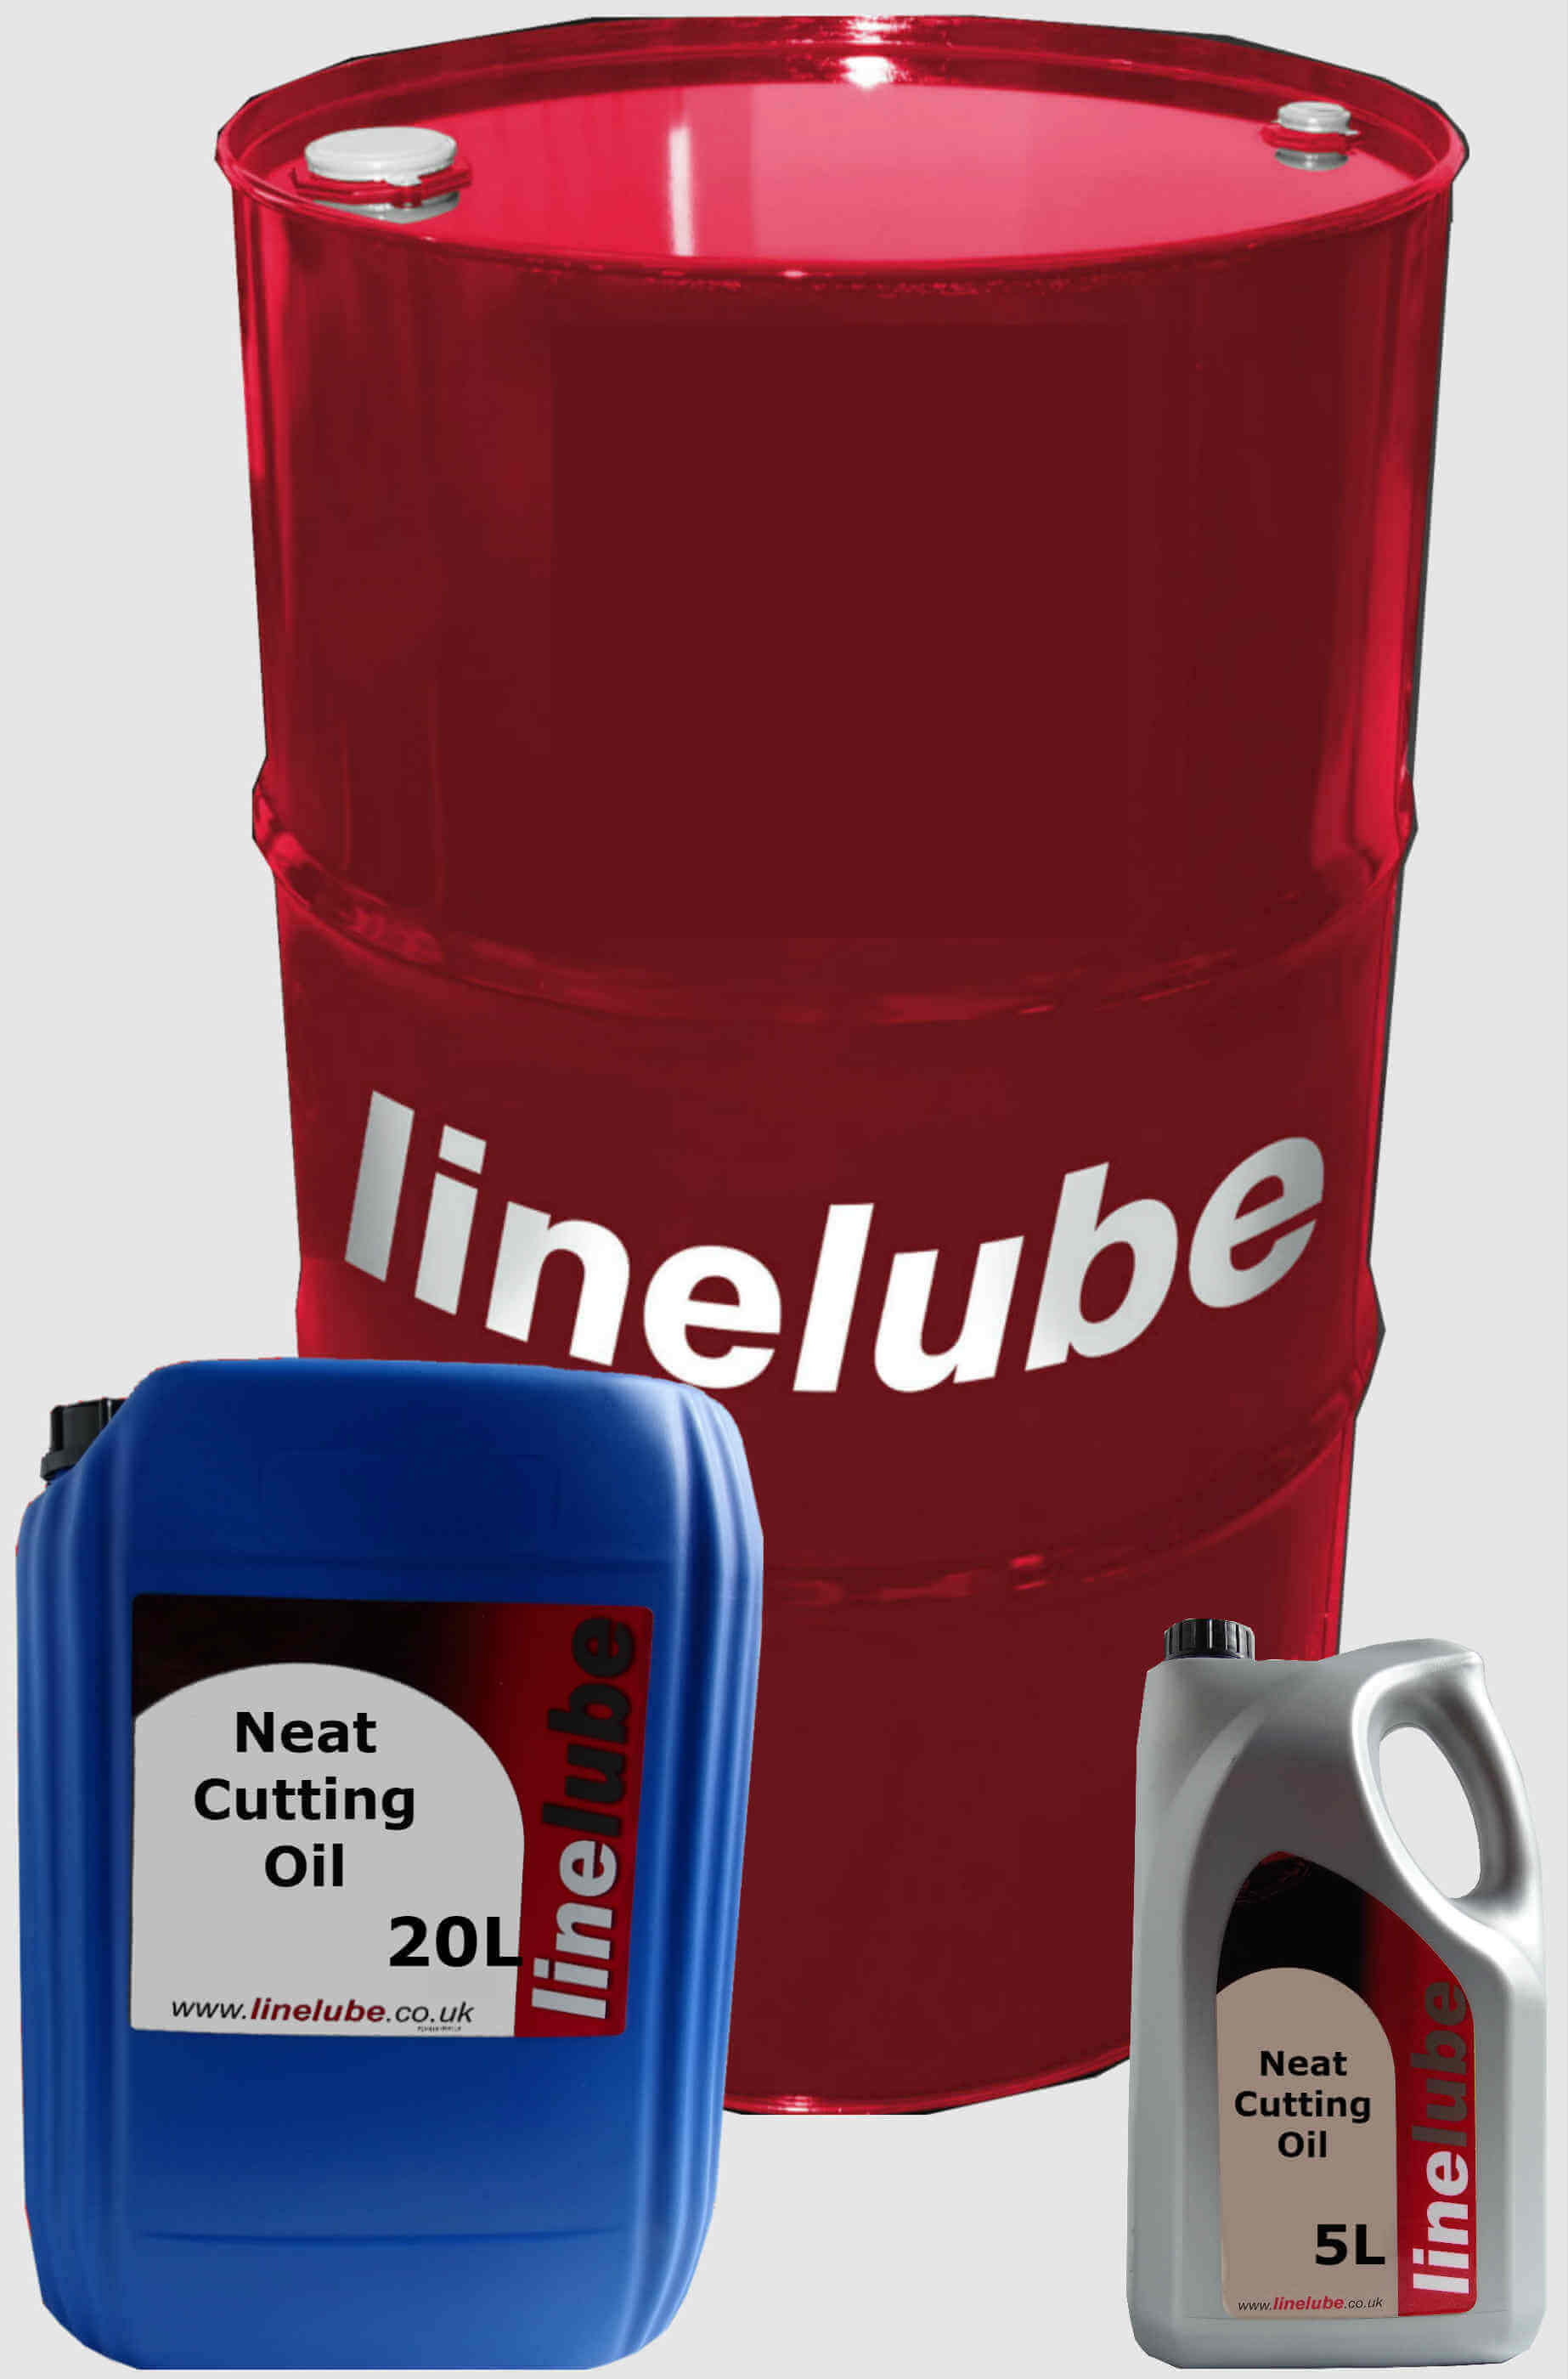 linelube Neat Cutting Oil